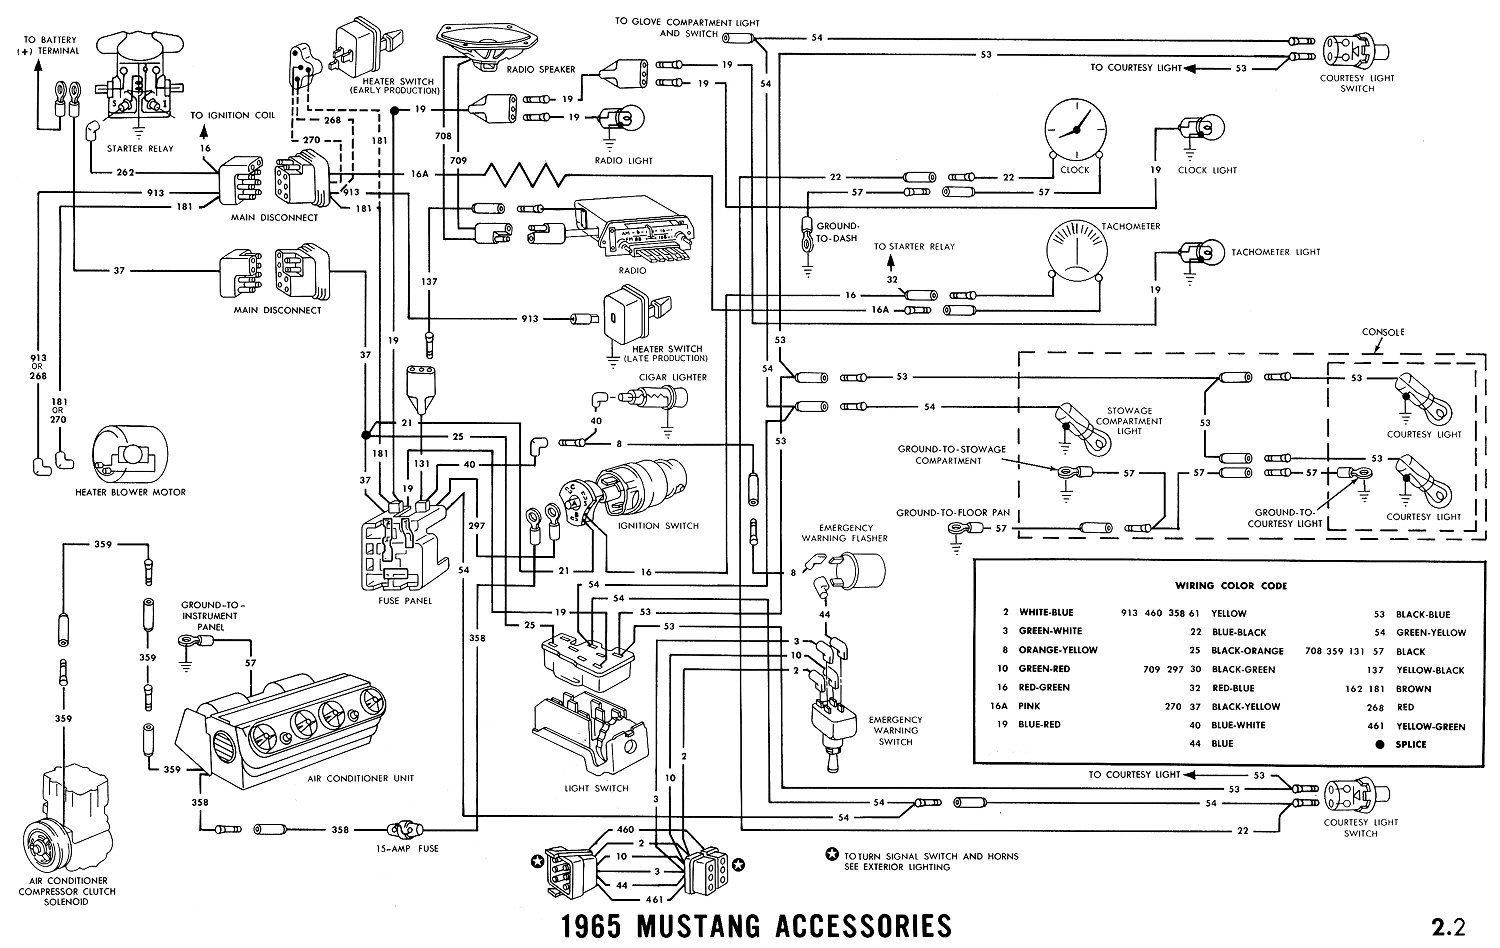 hight resolution of 1965 mustang wiring diagrams average joe restoration 2002 mustang gt wiring diagram 1965 mustang accessories pictorial